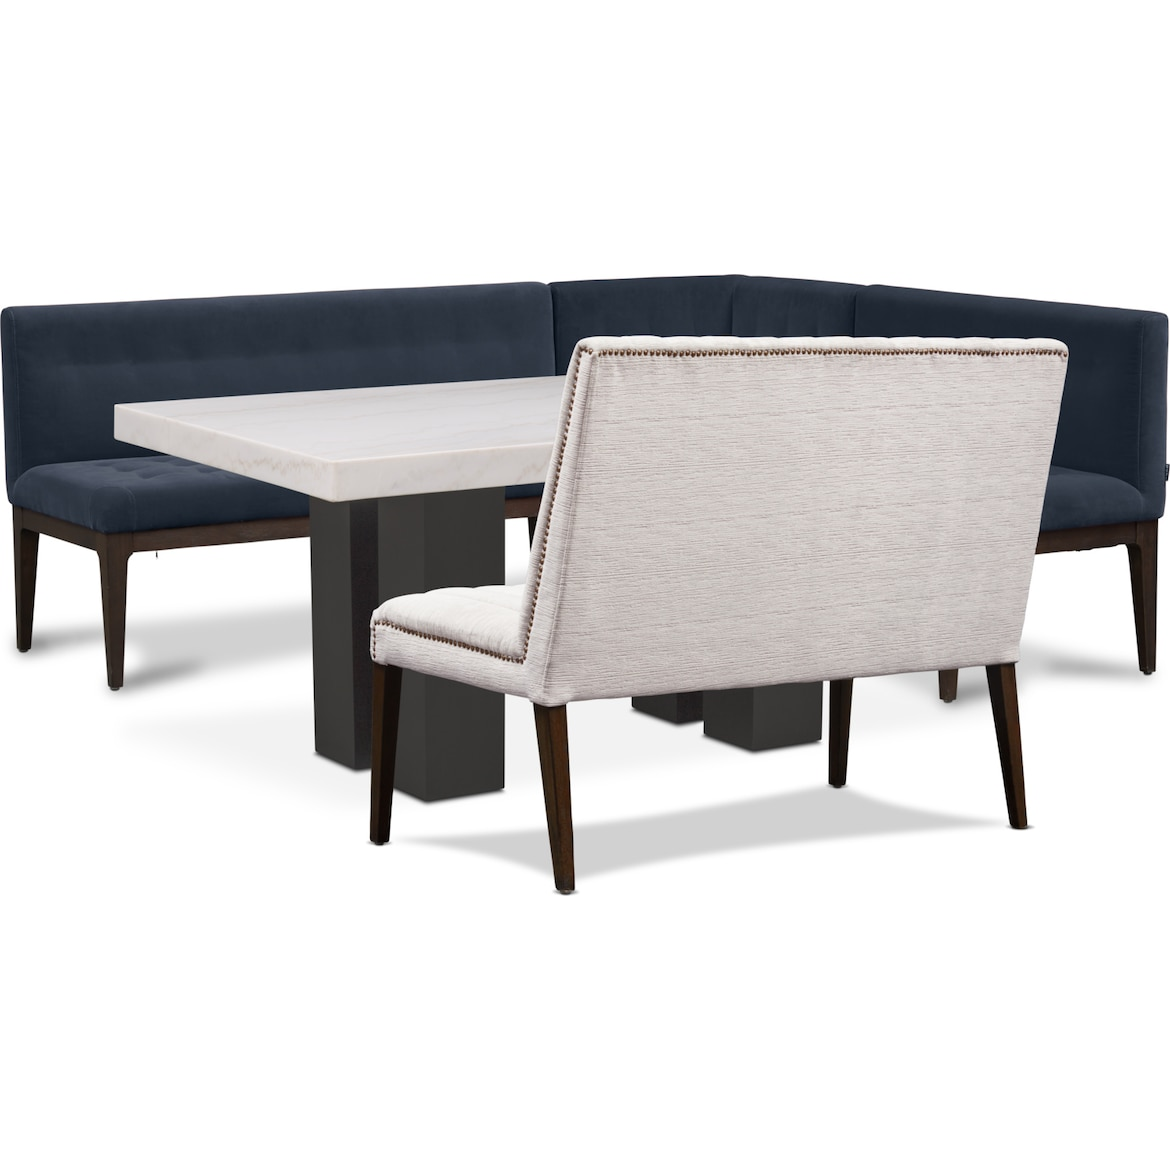 Banquette Table: Artemis Dining Table, Corner Banquette, And Bench